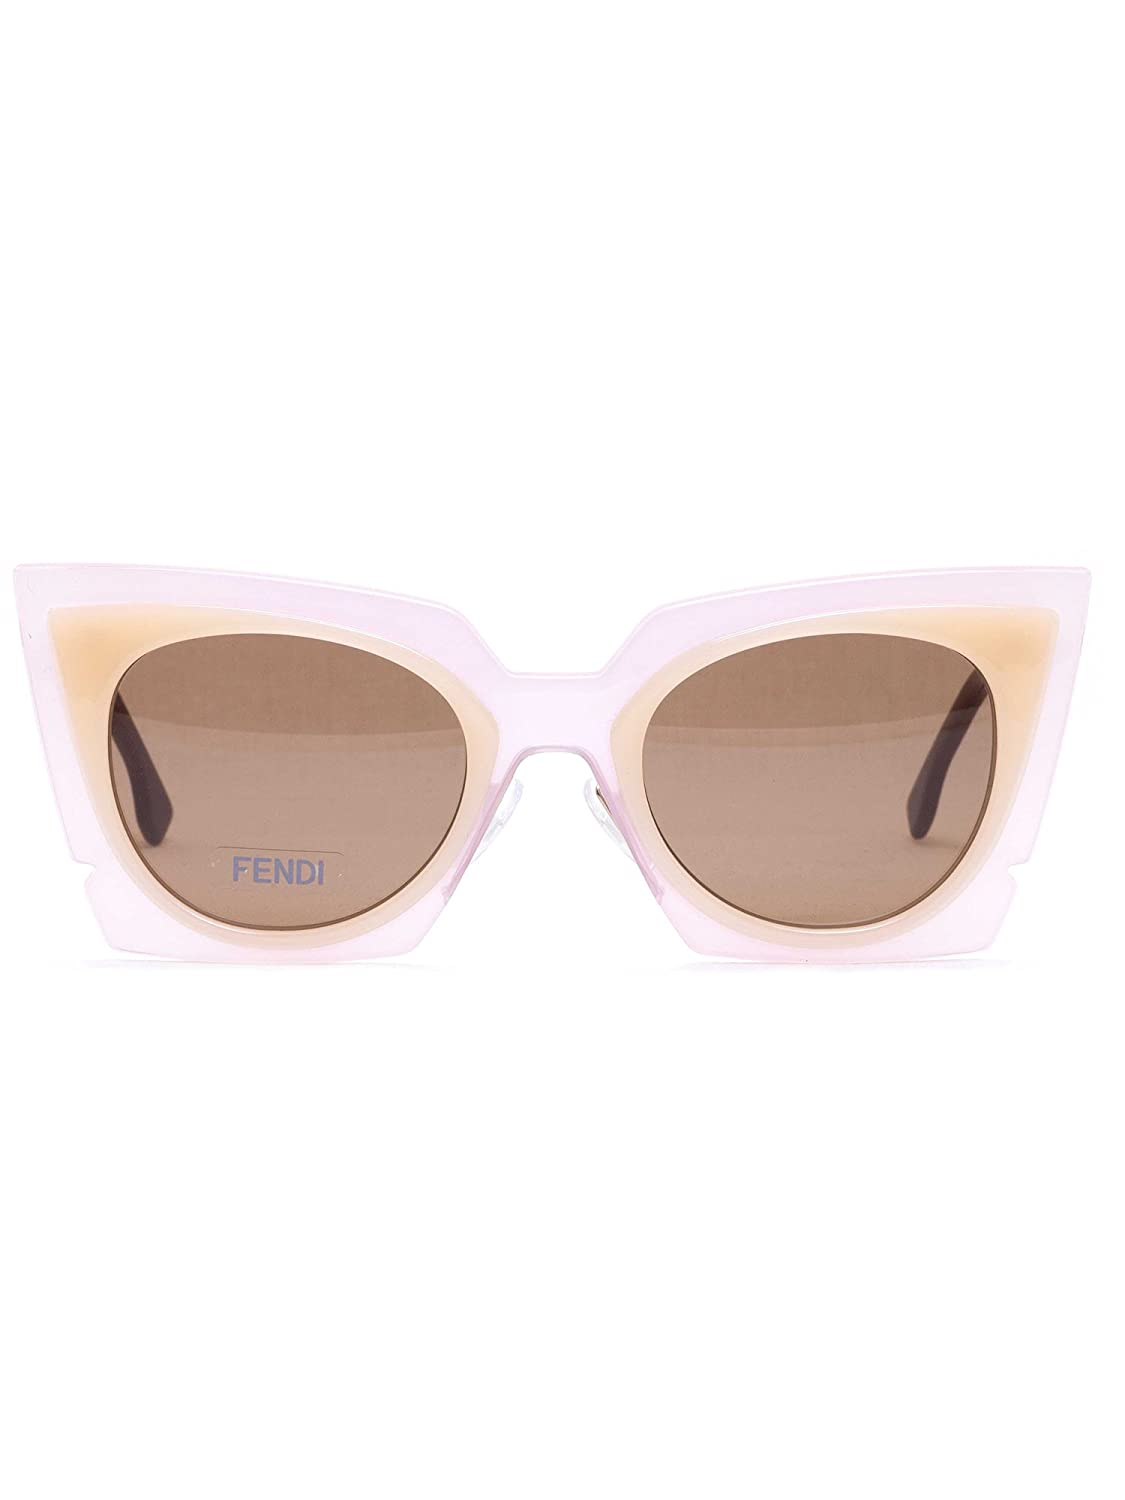 8fcbeac043 Fendi 0117 S Orchid Cat Eye Sunglasses LAQUT Pink   Peach   Tobacco Brown  Lenses at Amazon Men s Clothing store